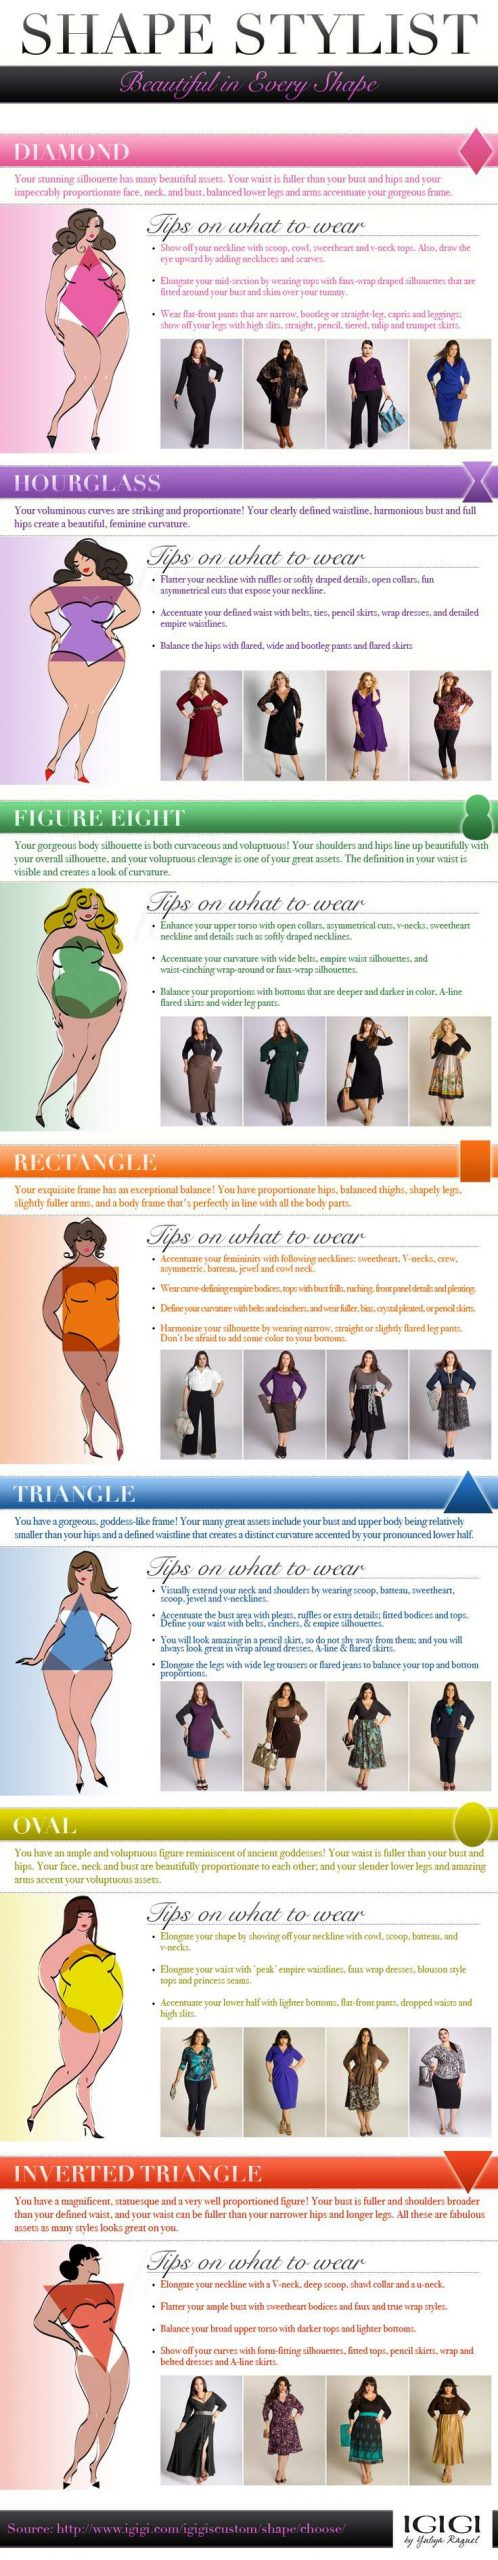 Dressing for Your Shape as a Plus Size Woman on The Curvy Fashionista